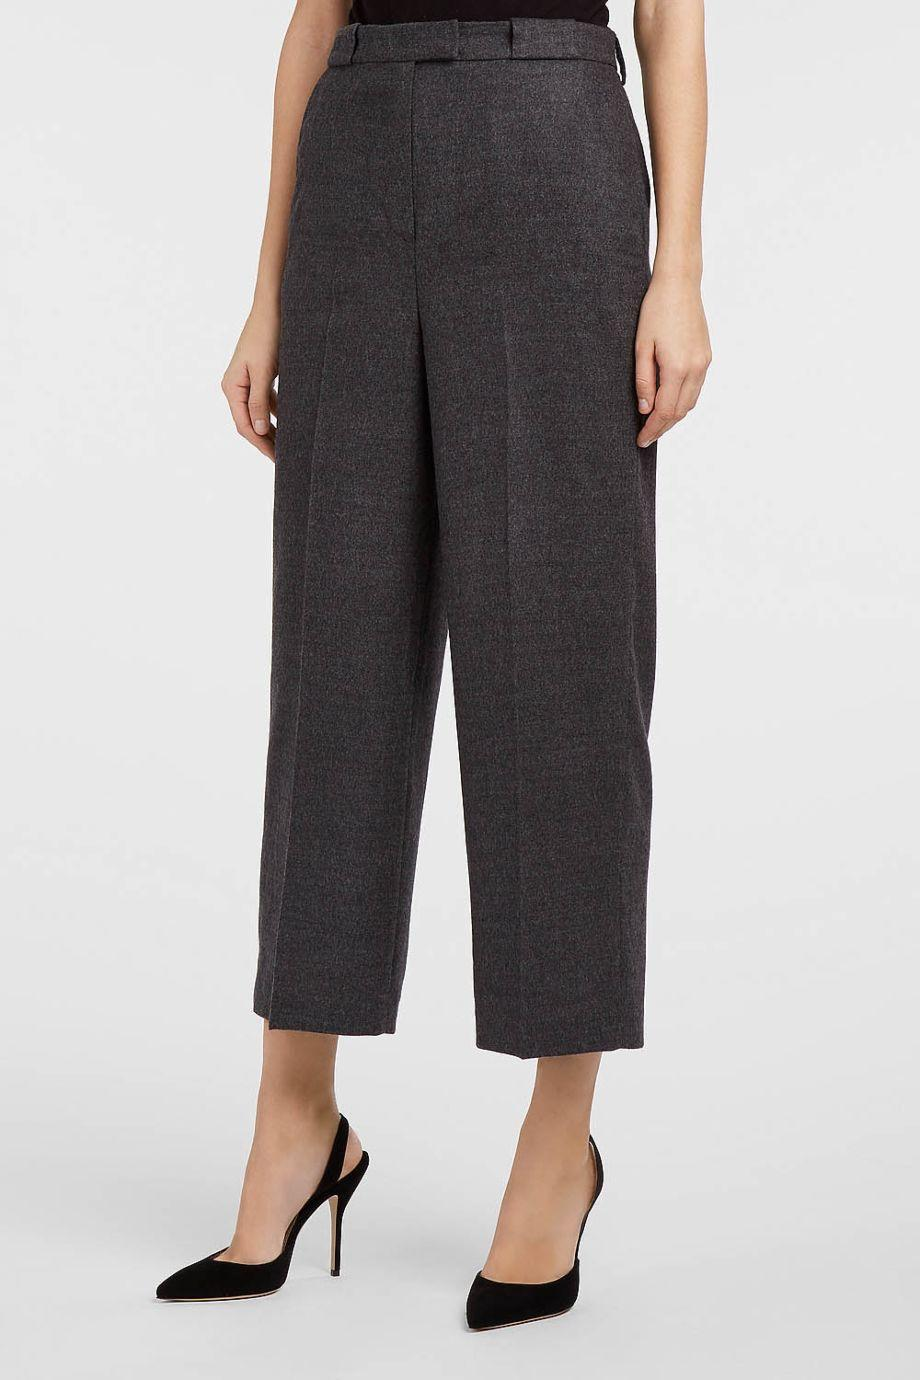 Paul & Joe Sister Kalin Cropped Wool-Blend Felt Trousers